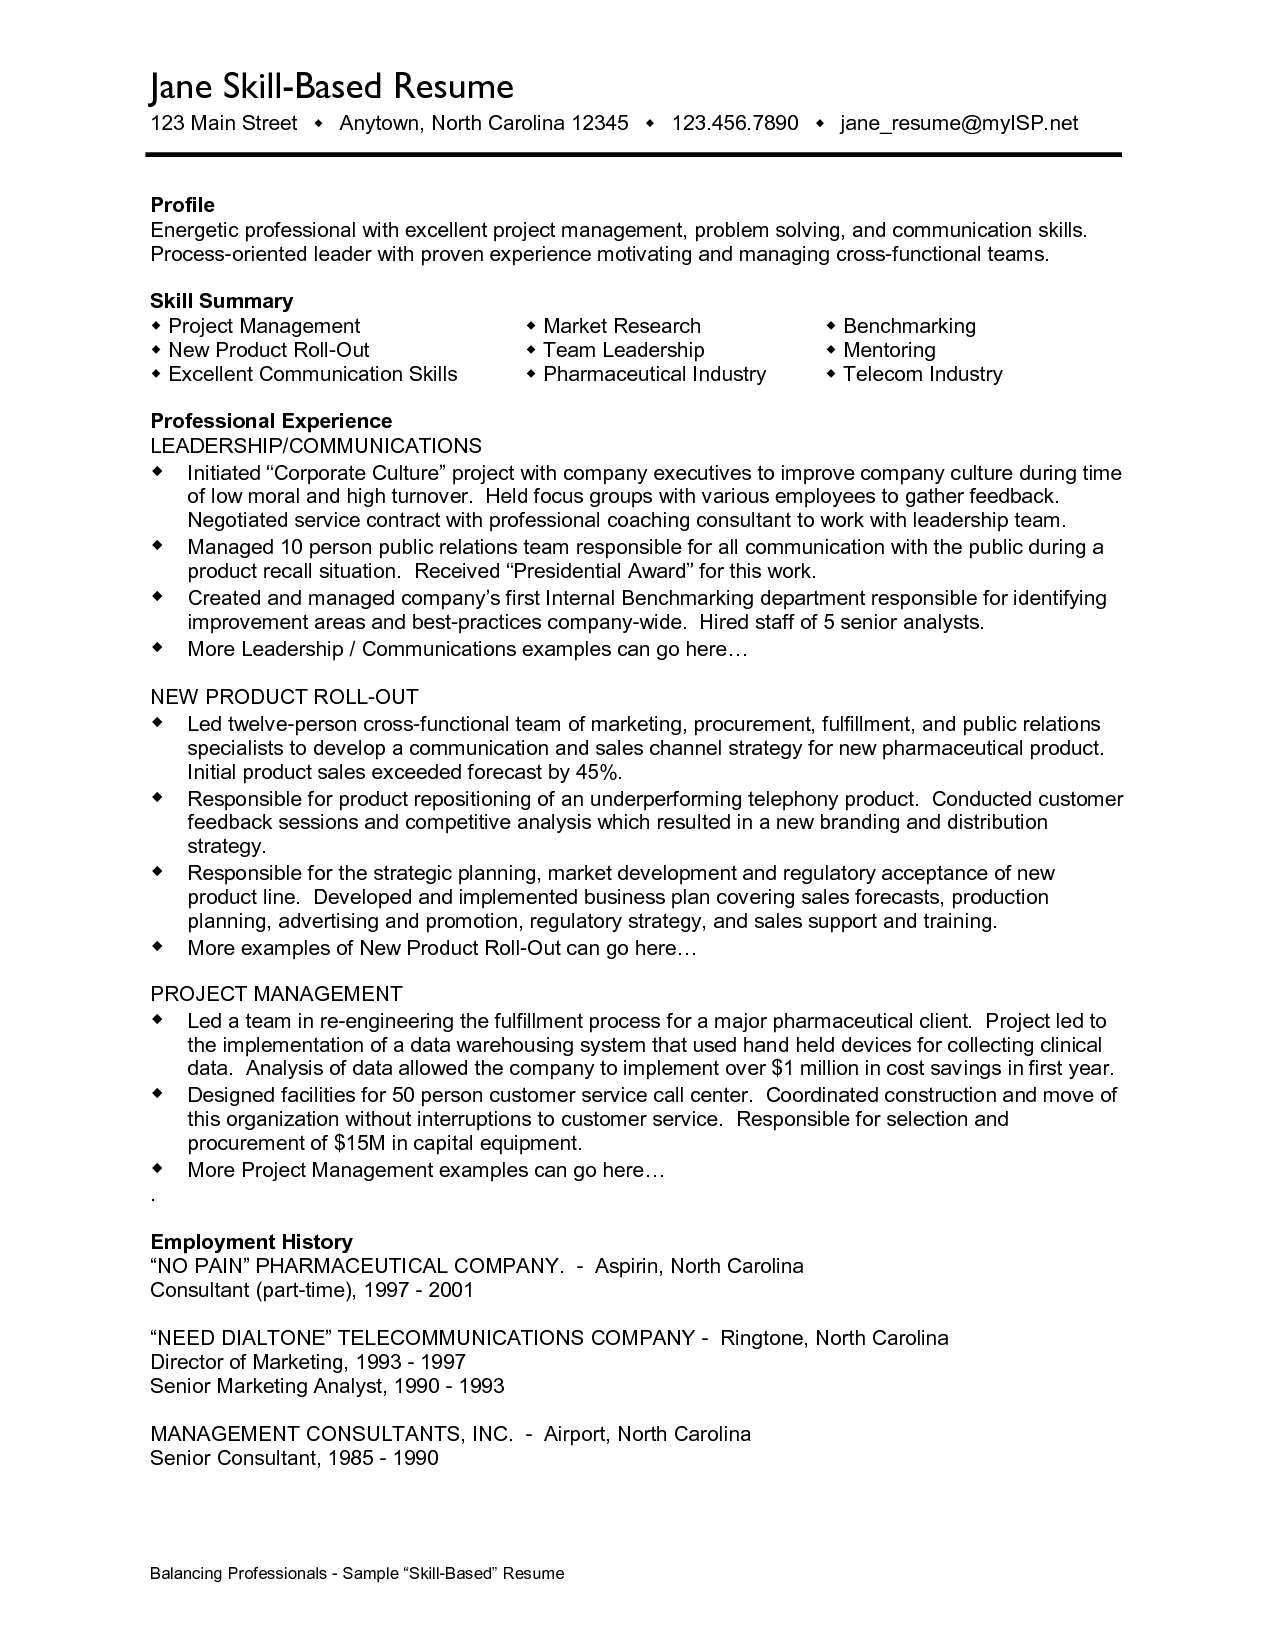 Sample Resume Skills Job Resume Communication Skills  Httpwwwresumecareerjob